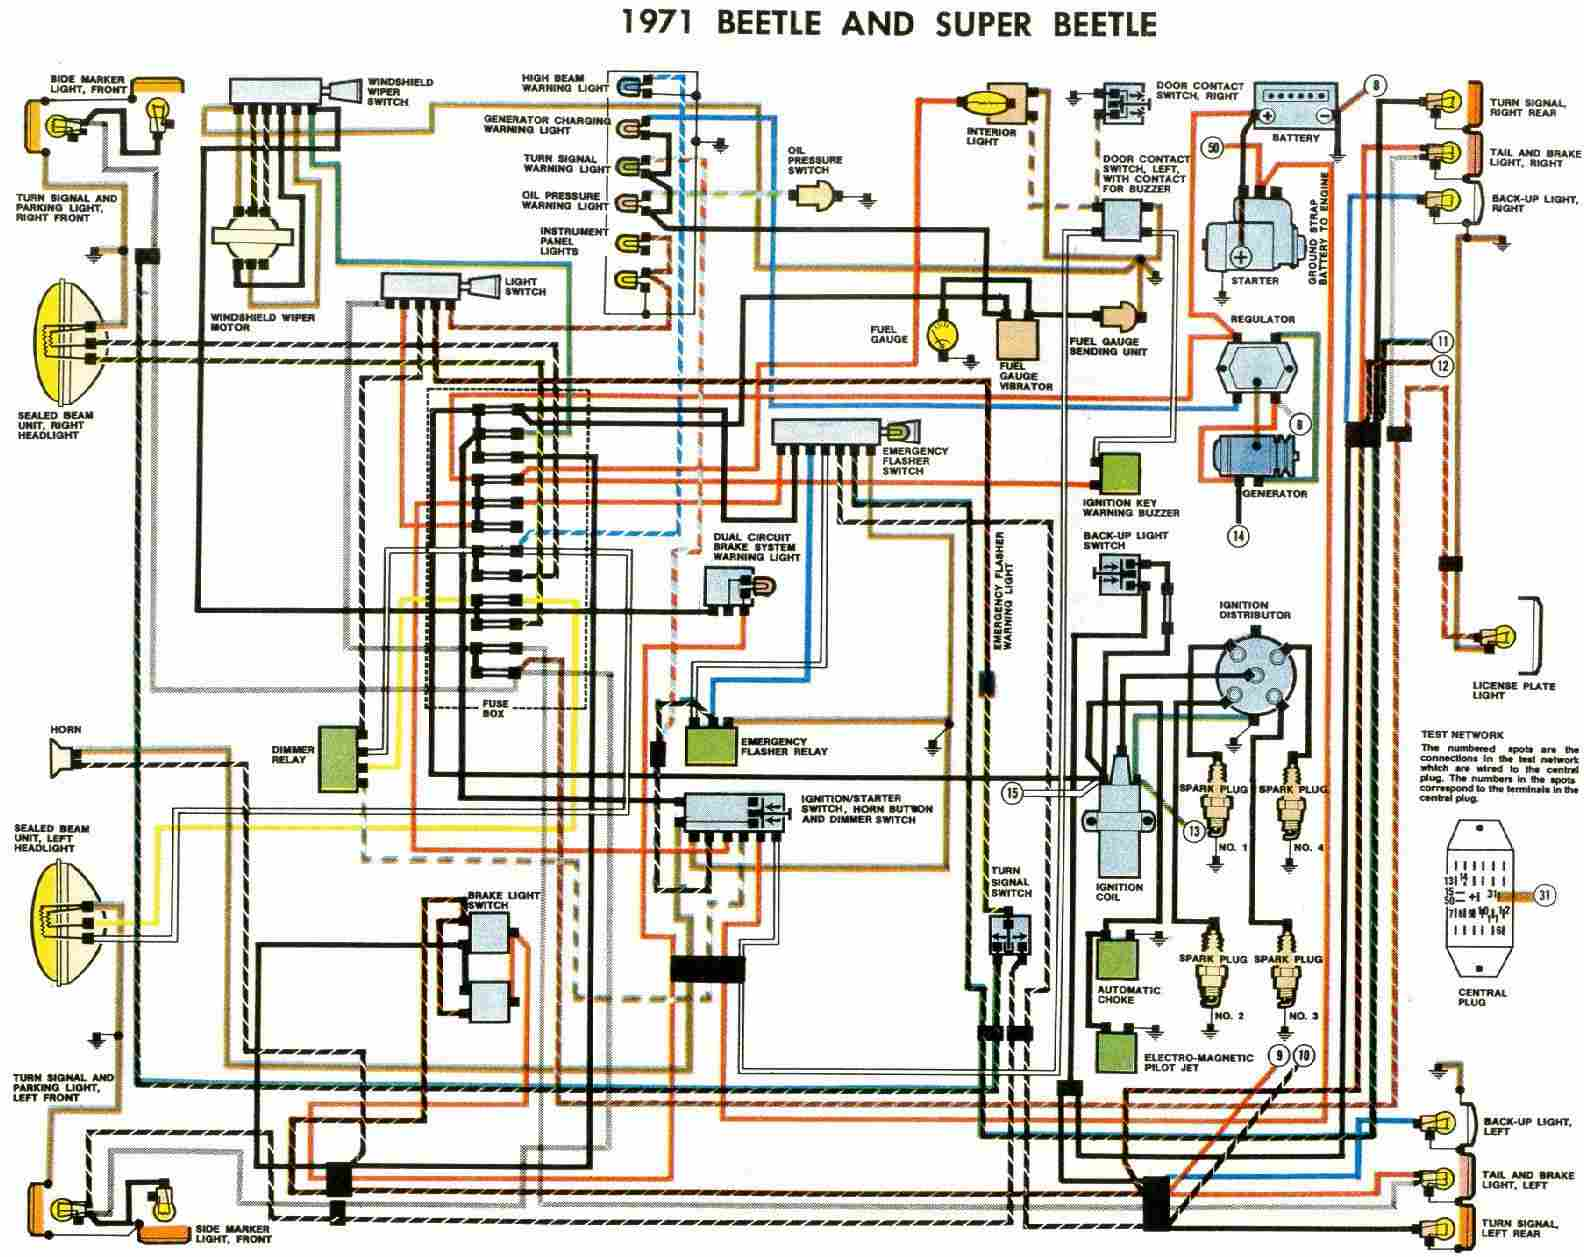 79 Ford Alternator Wiring Diagram Control Xb Vw Beetle And Super 1971 Electrical